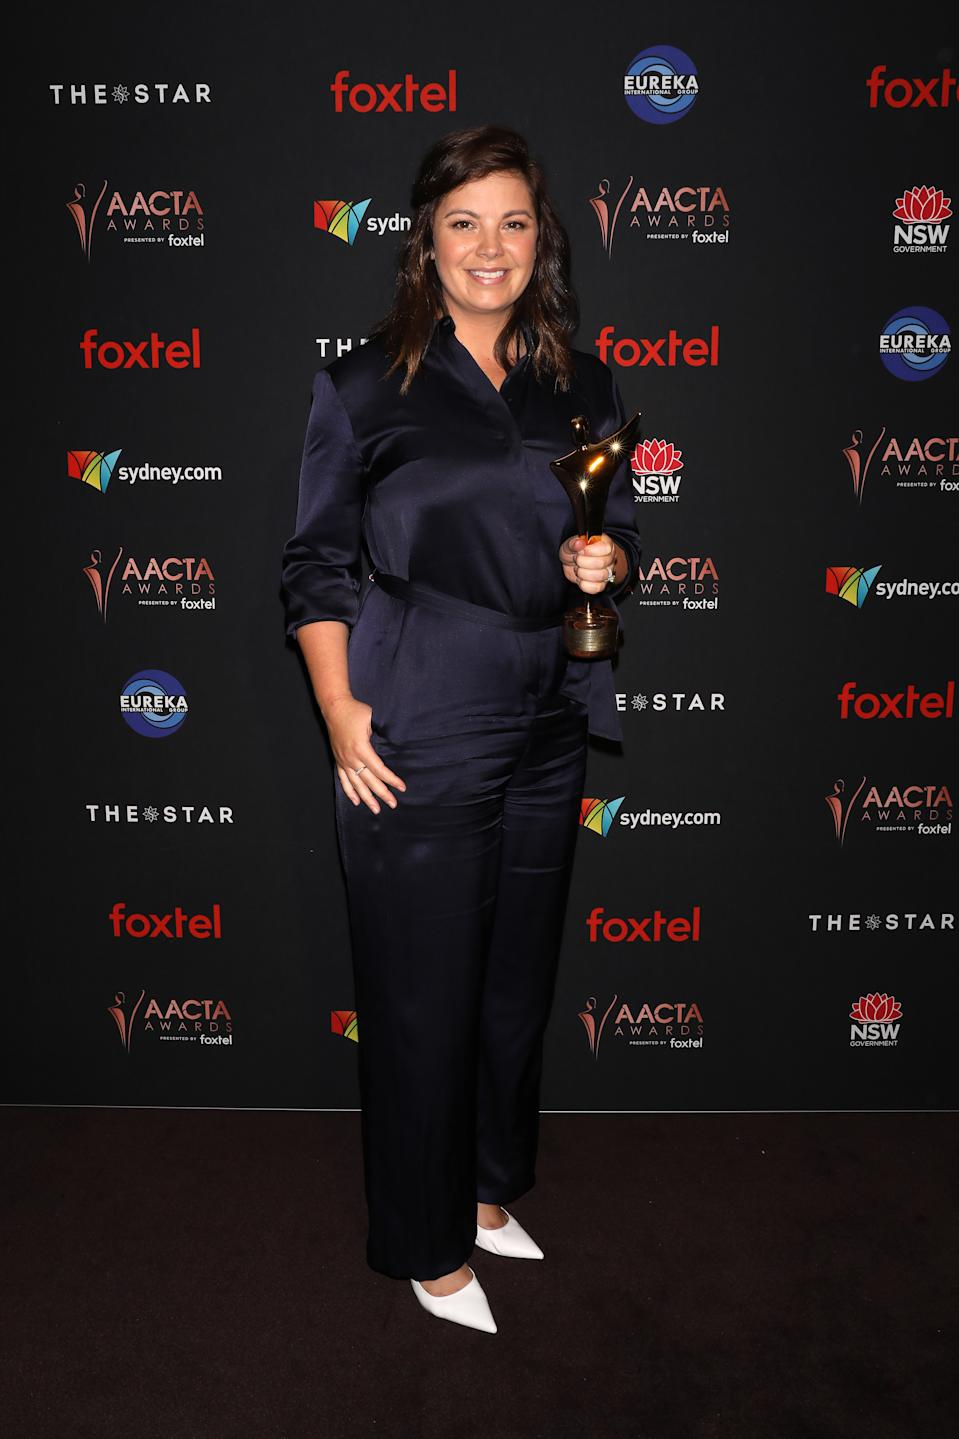 Yvonne Sampson poses and smiles with the AACTA Award for Best Female Presenter in the media room.